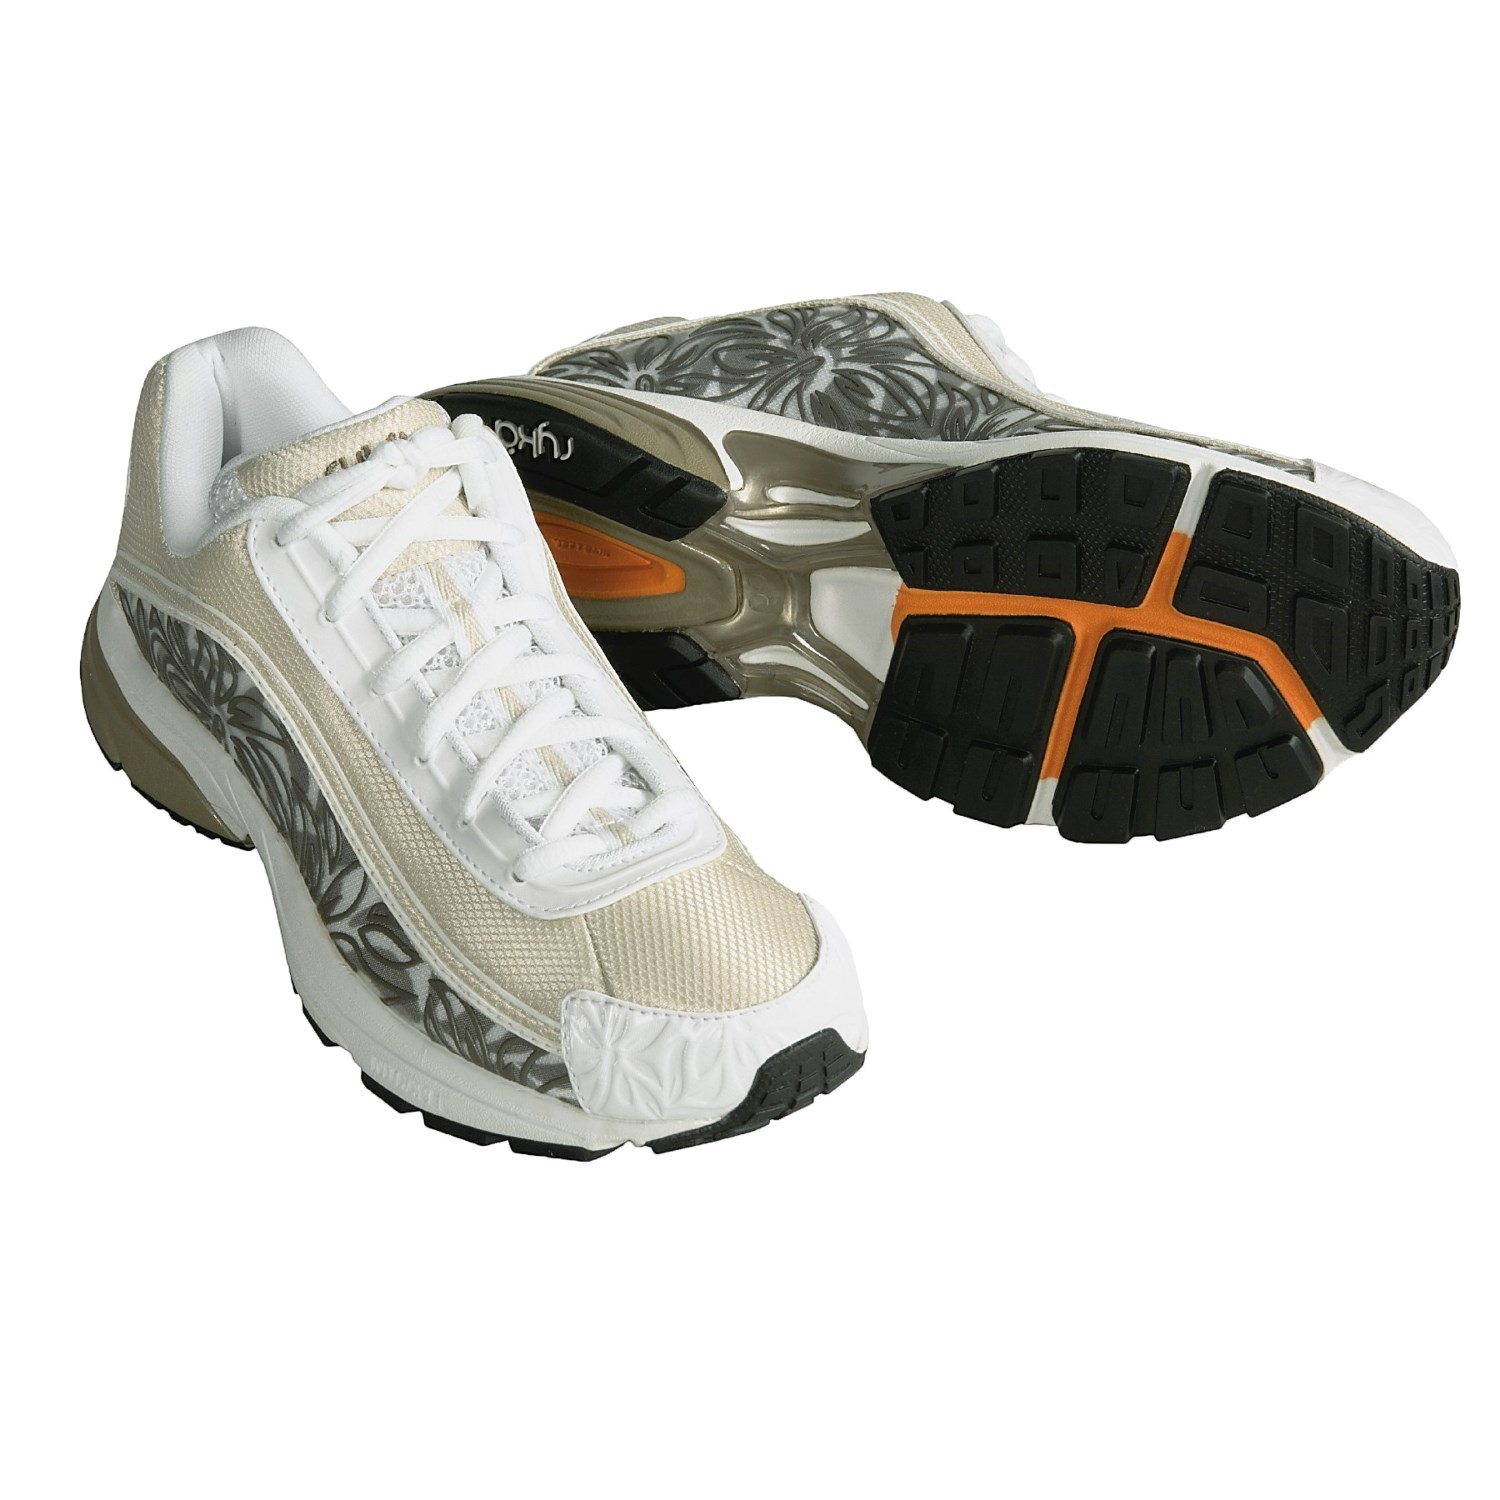 Ryka Carrara Running Shoes